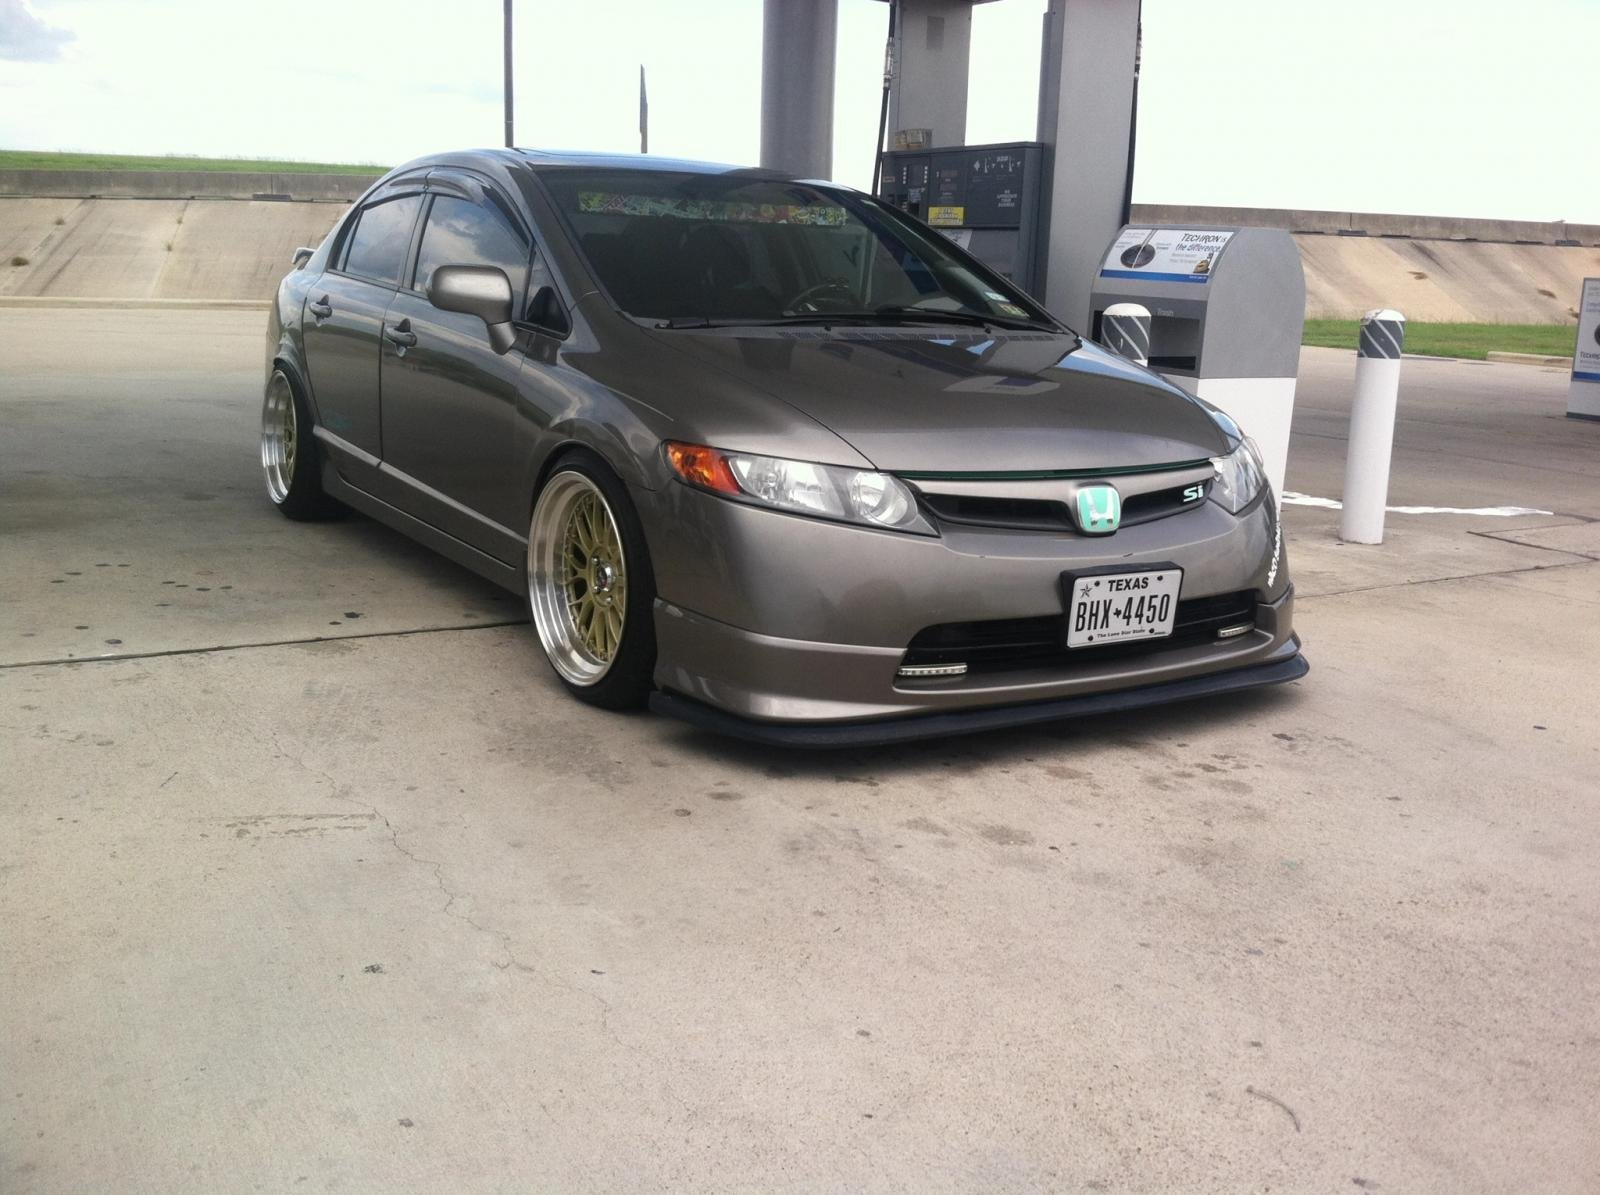 Stanced wide wheel 8th gen civic only pictures and chat img_0687